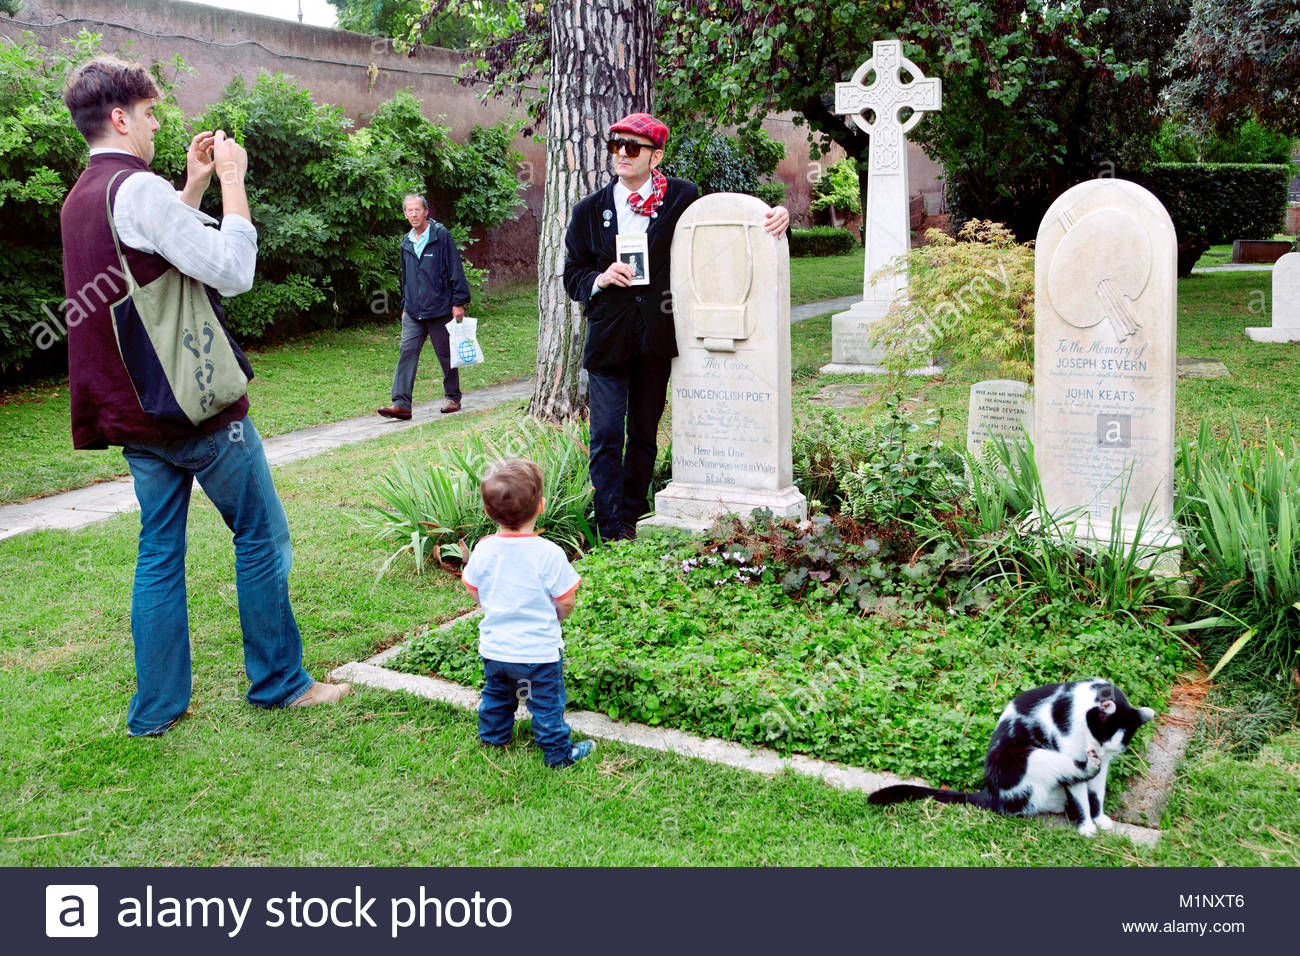 Fan standing / posing next to the grave of British poet John Keats (and English painter Joseph Severn to the right), - Stock Image